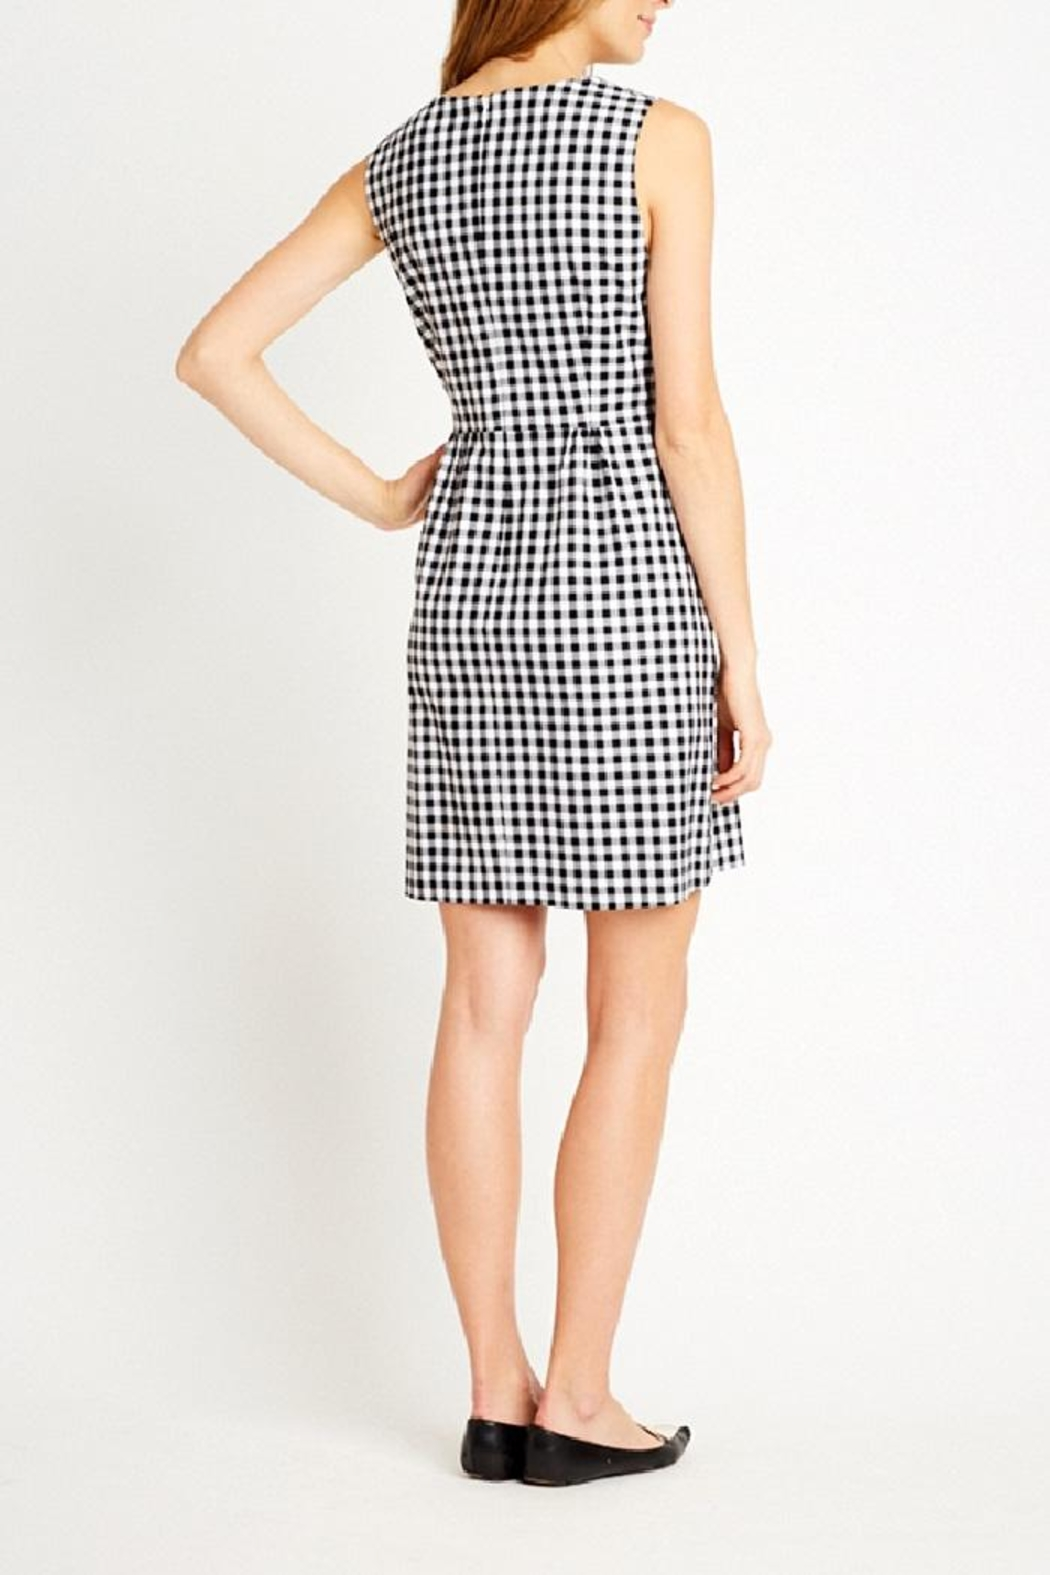 Tyler Boe Claire Gingham Dress - Front Full Image